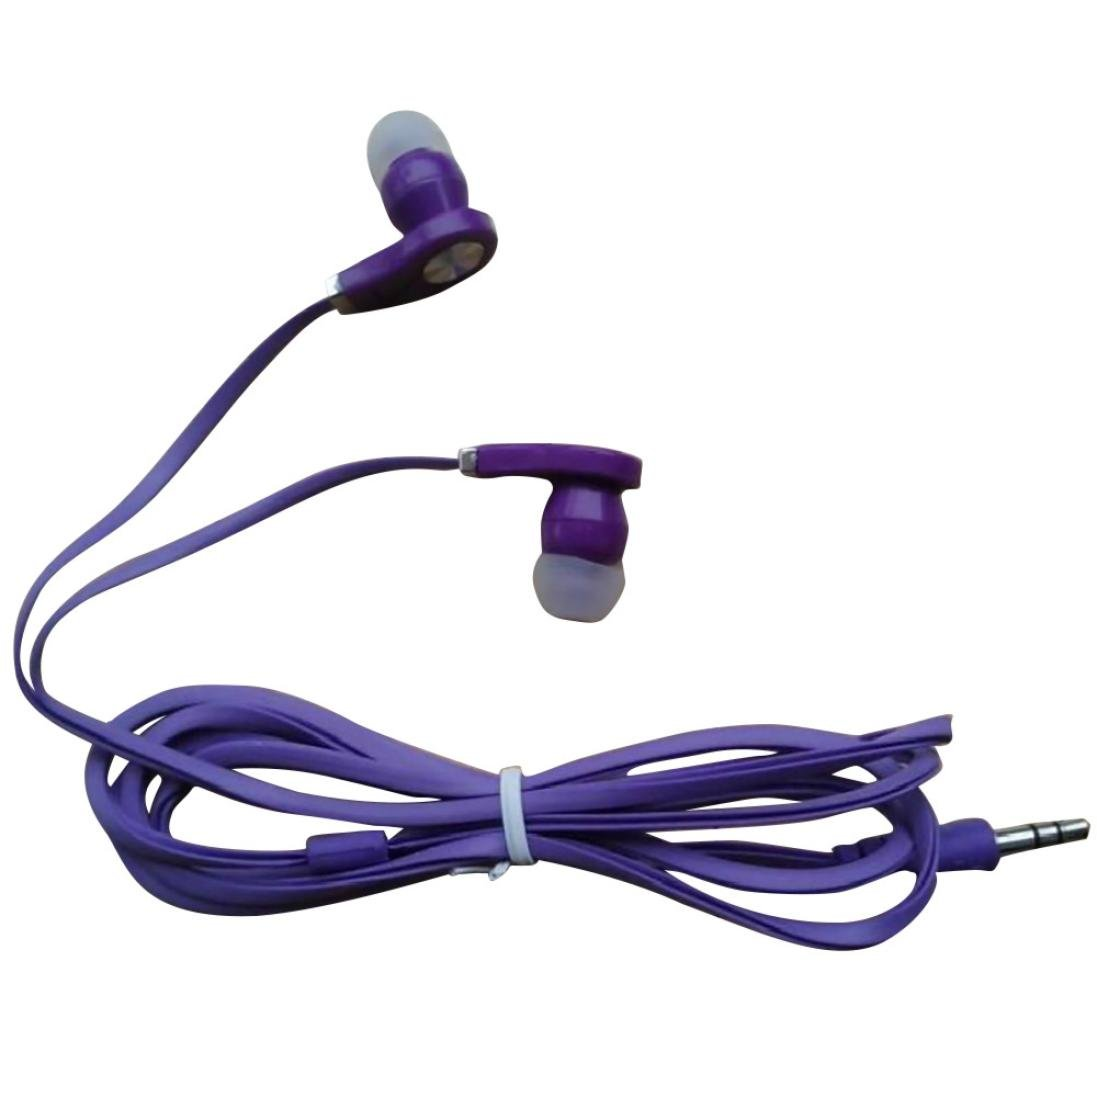 Creazy Universal 3.5mm In-Ear Stereo Earbuds Earphone With a 3.5 mm Audio Jack,Computer (Purple) by Creazydog (Image #1)